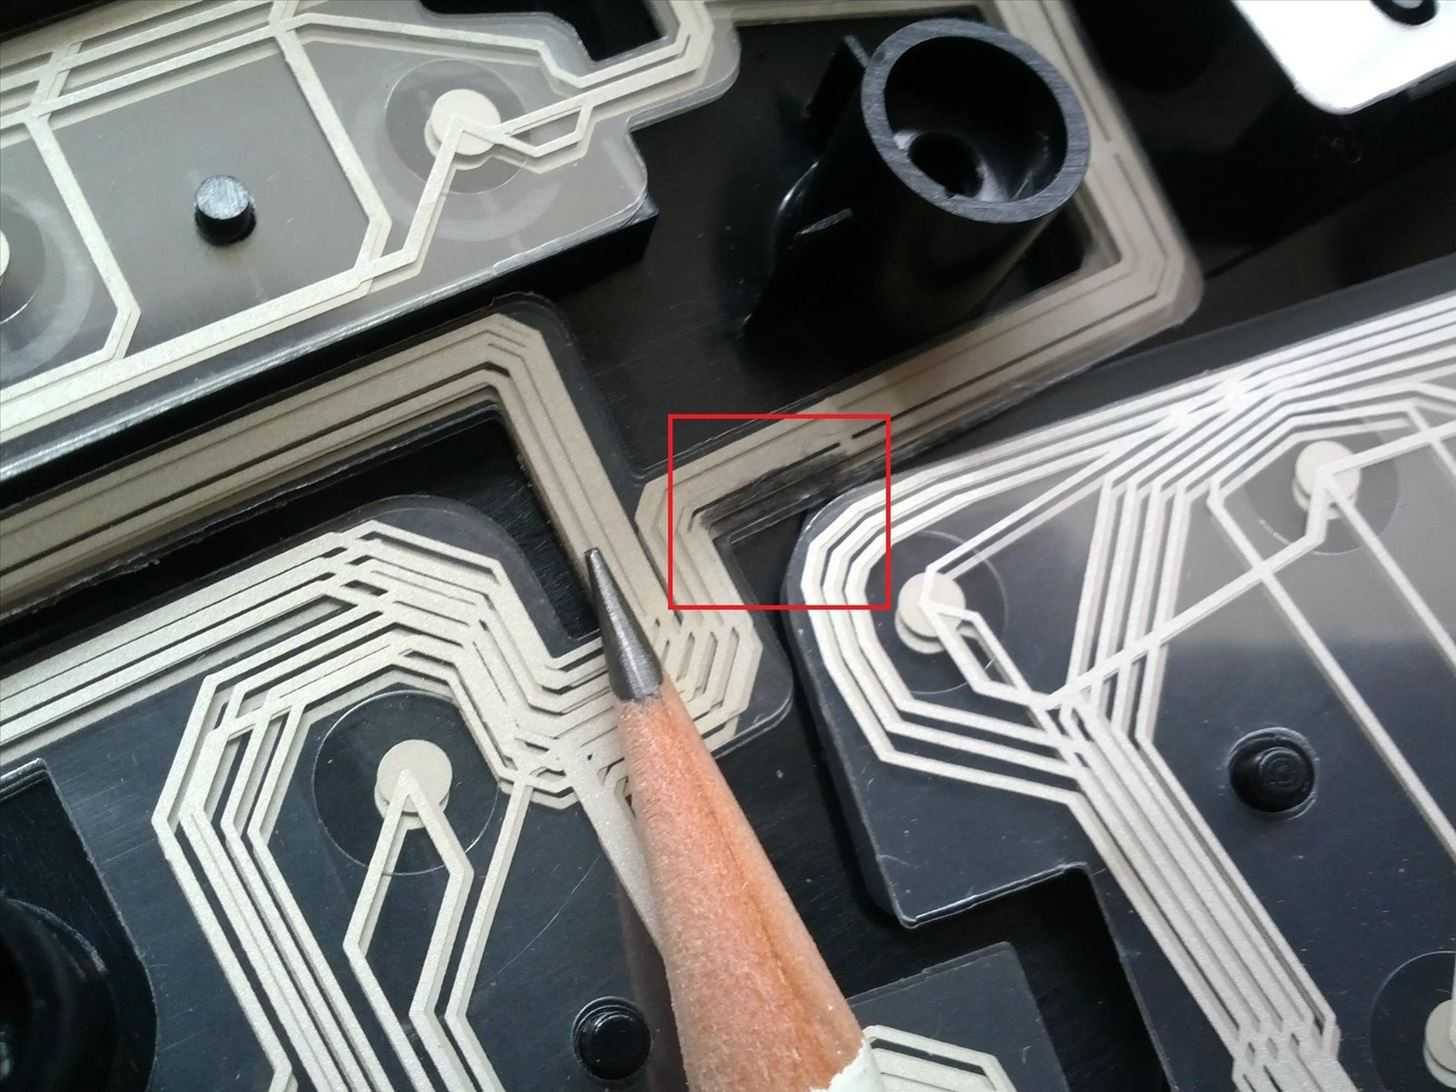 Quick N Dirty Circuit Board Repair How To Patch Faded Or Corroded Etch A This Trick Isnt Just Good For Keyboardsit Should Fix Light Damage The Pcb In Other Electronics Like Gps Game Controller Remote Control